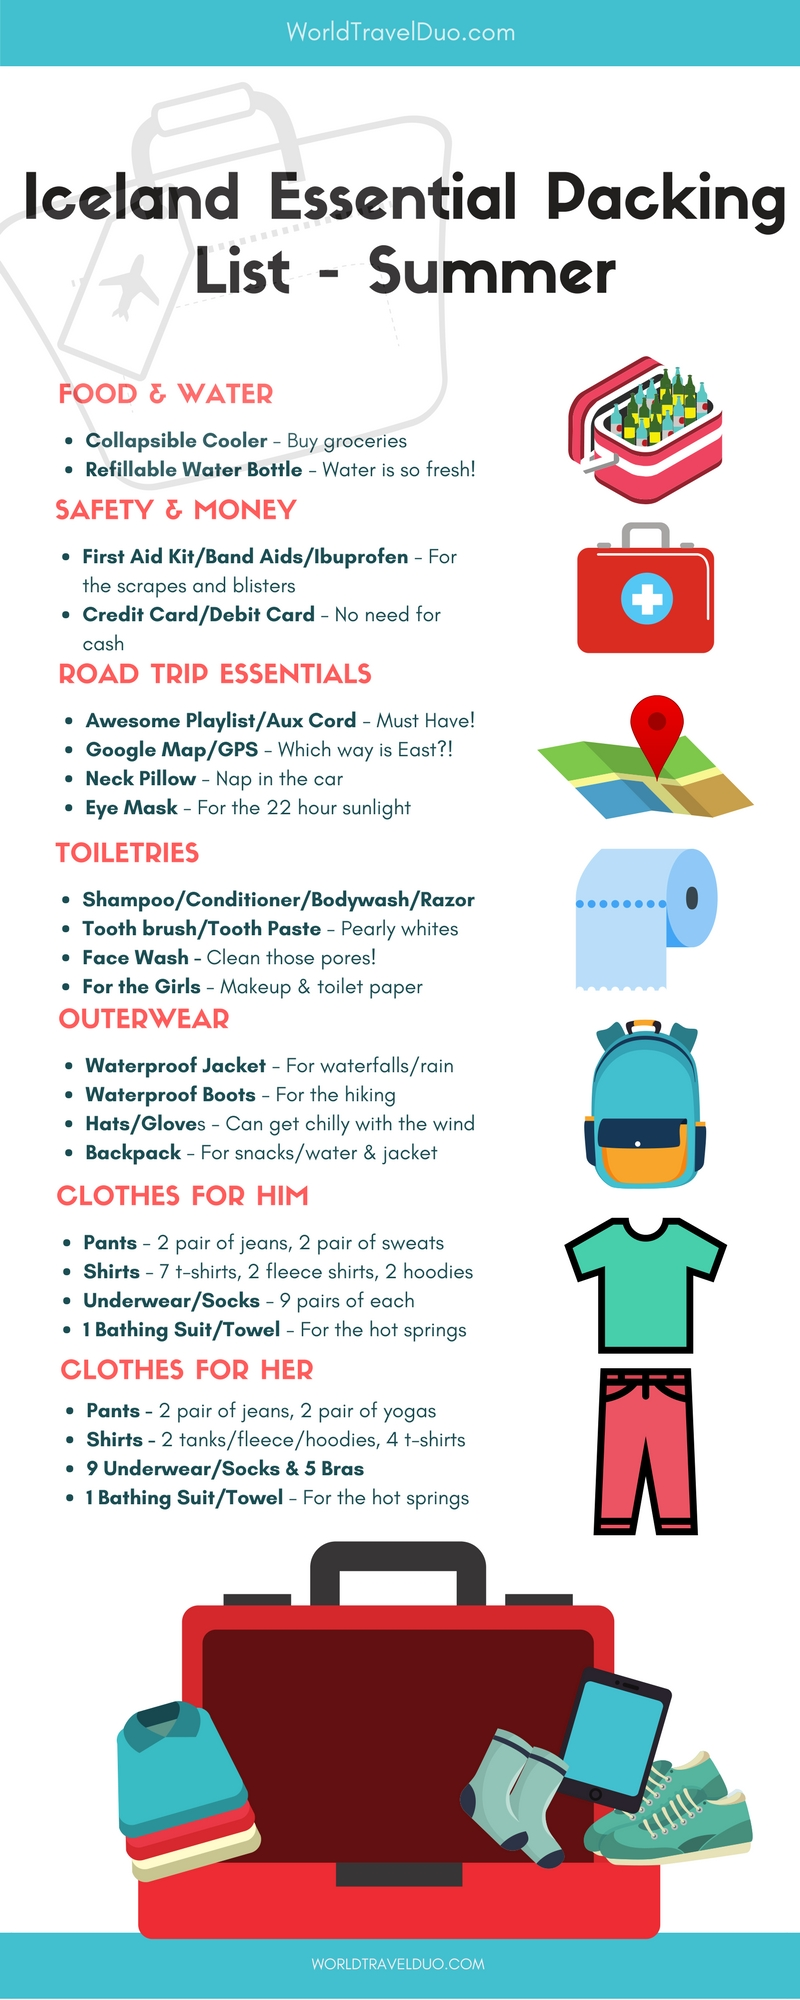 essential iceland road trip packing list for summer